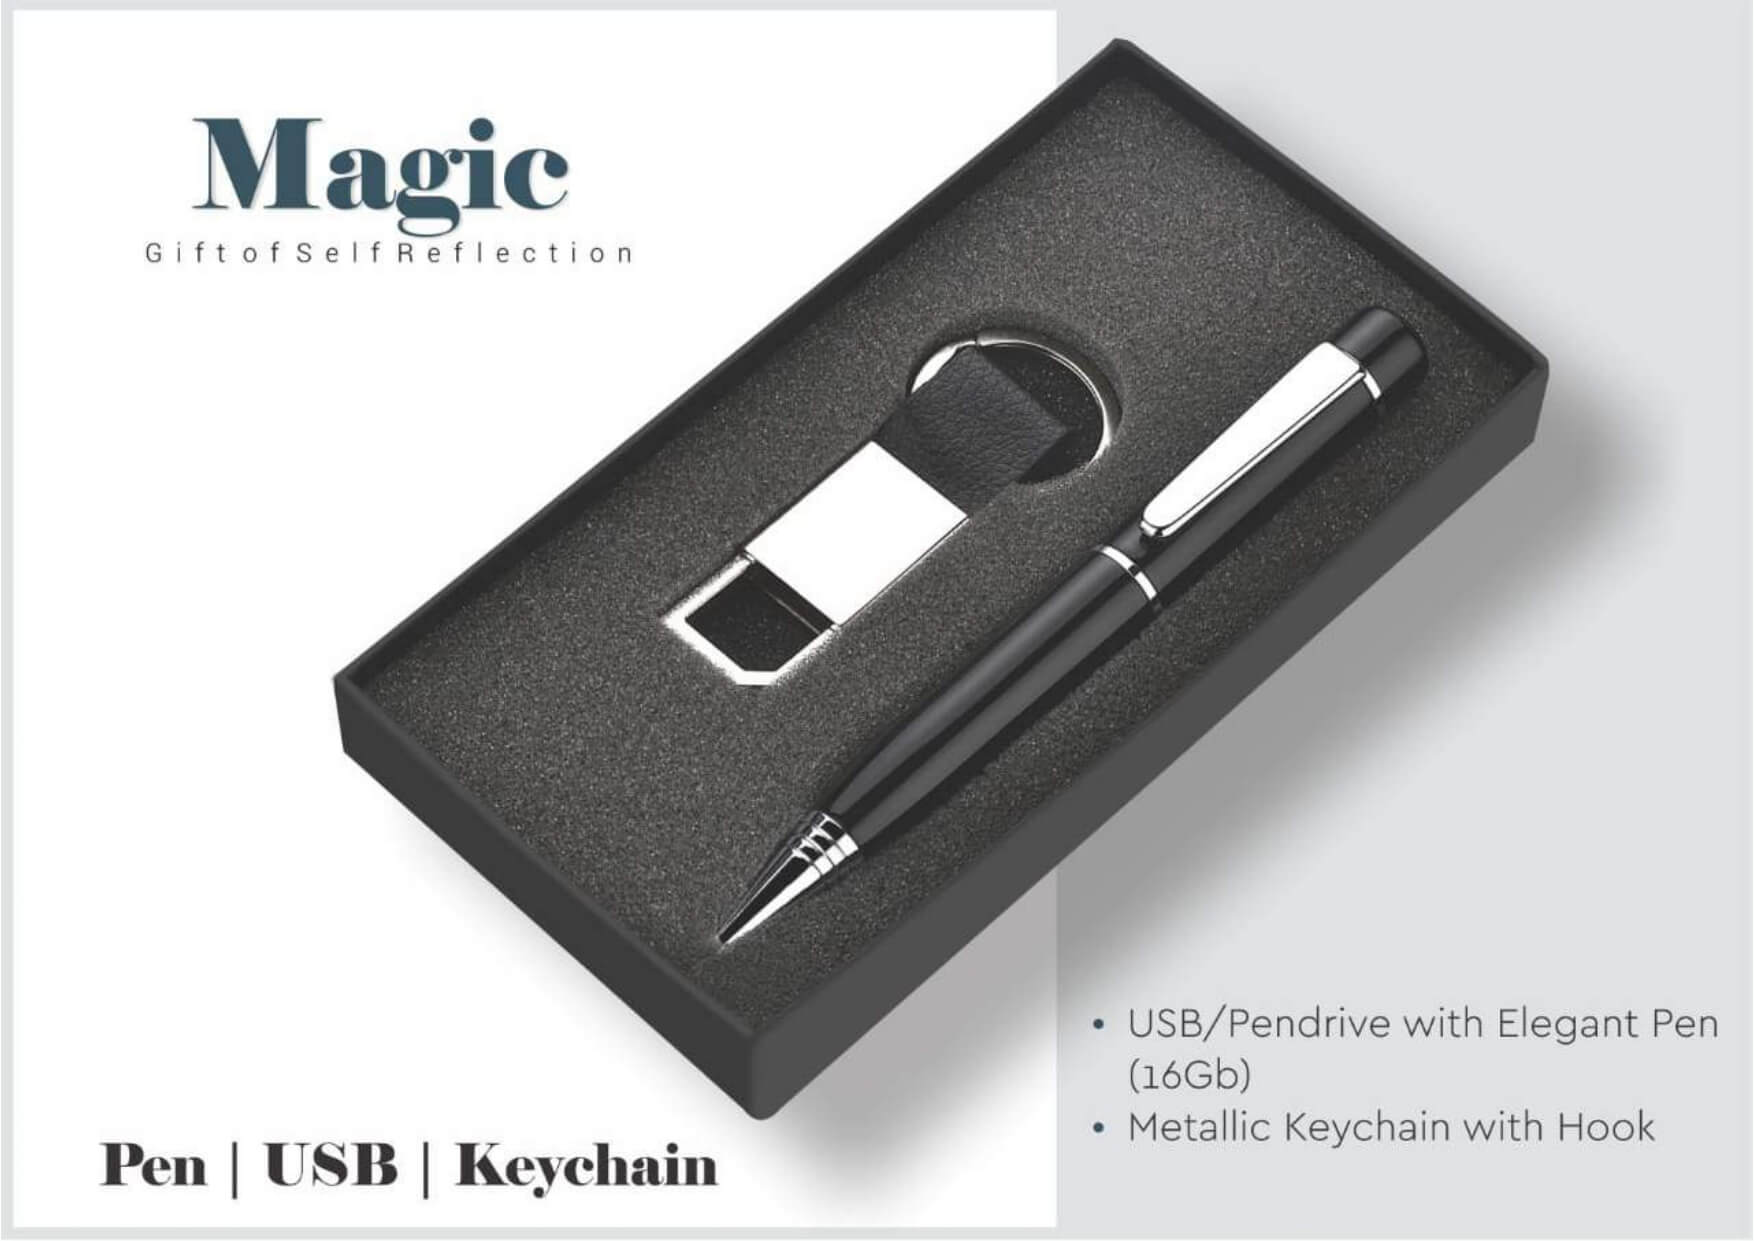 Pen with Usb and Keychain Magic